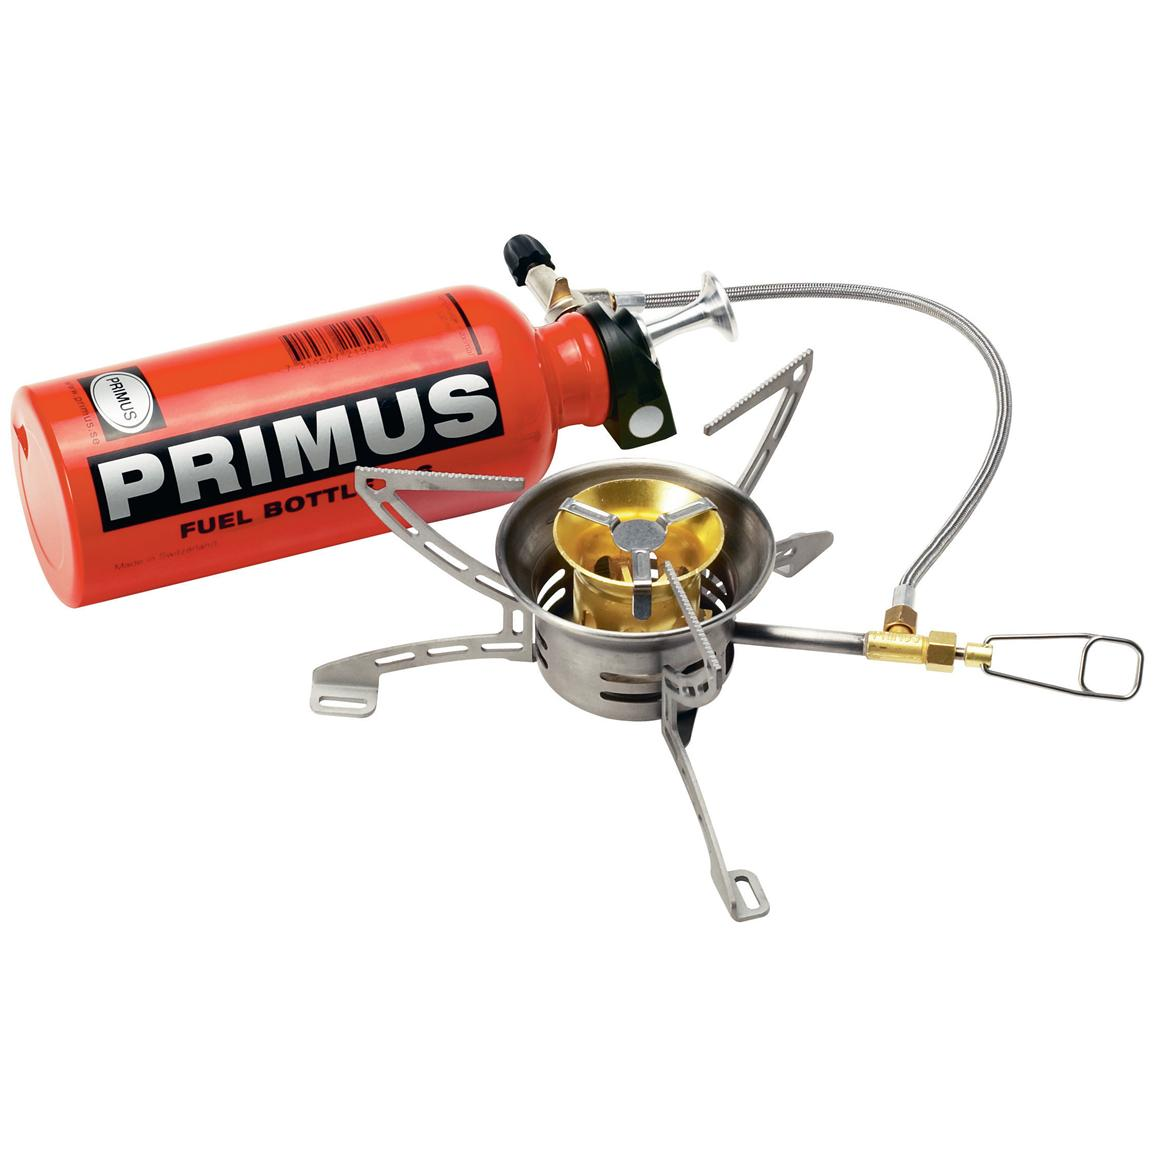 Primus® OmniFuel™ Stove w/ 0.6 - liter Fuel Bottle - 137612, Stoves at Sportsman's Guide